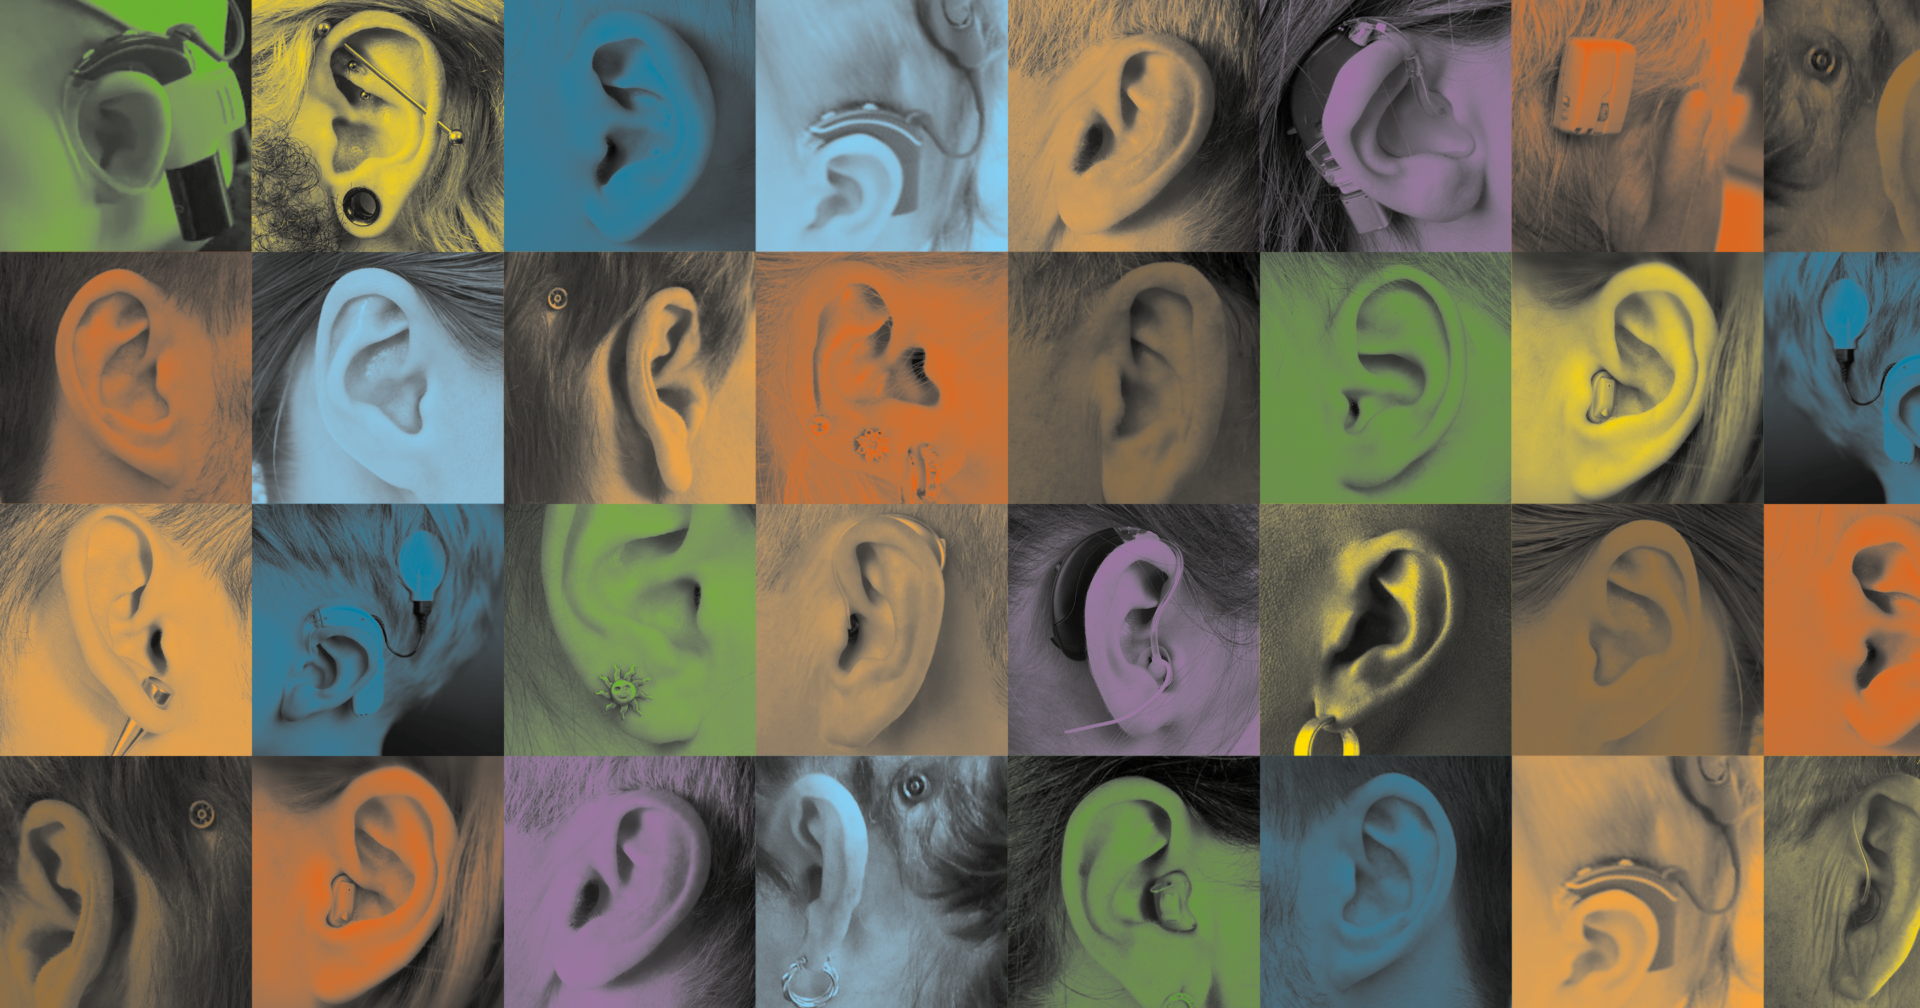 International Symposium on Auditory and Audiological Research